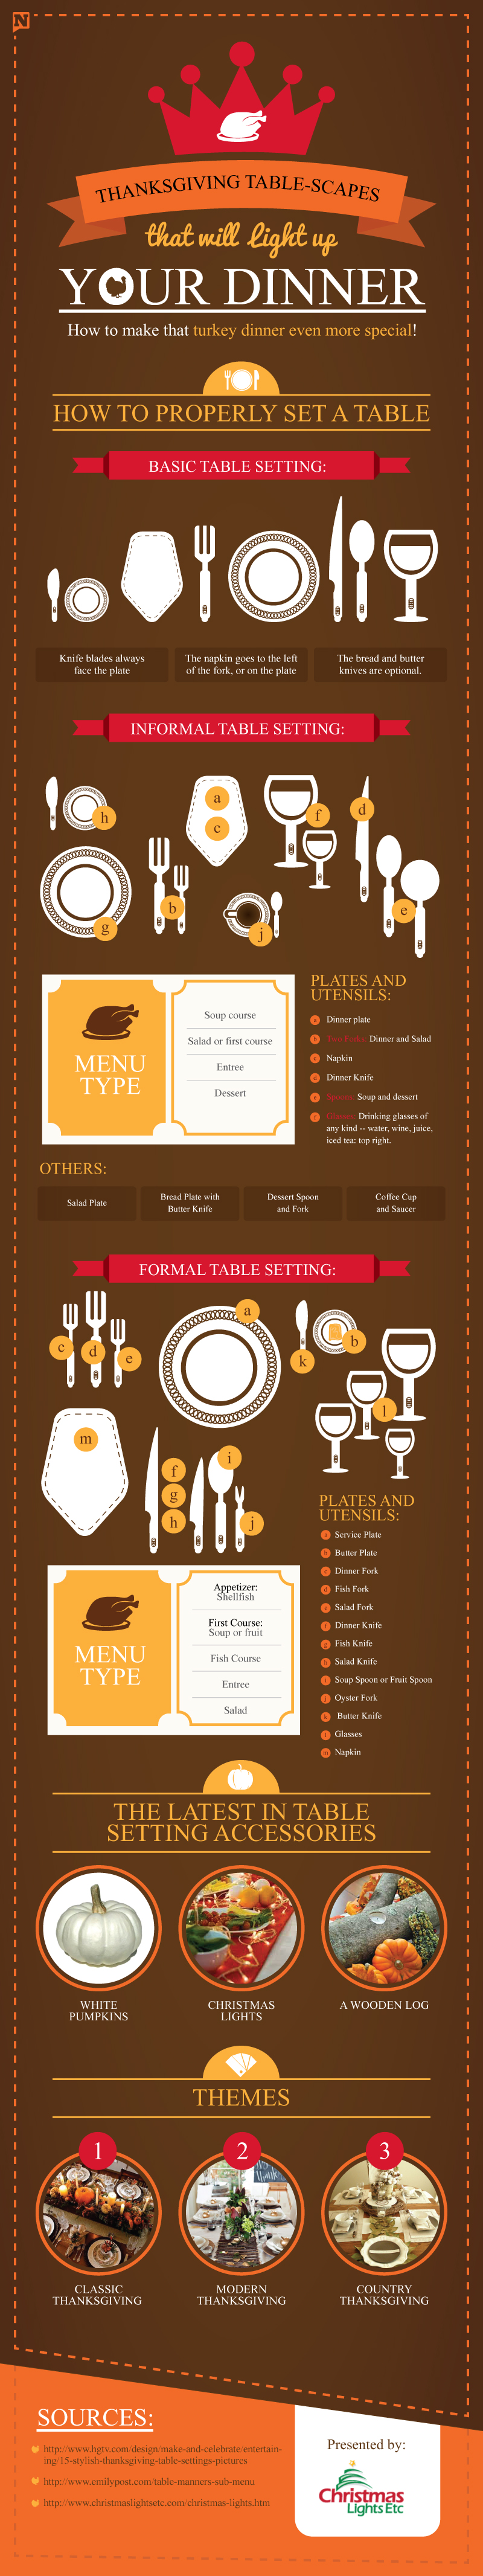 Thanksgiving Tablescapes: Guide to the Perfect Thanksgiving Table